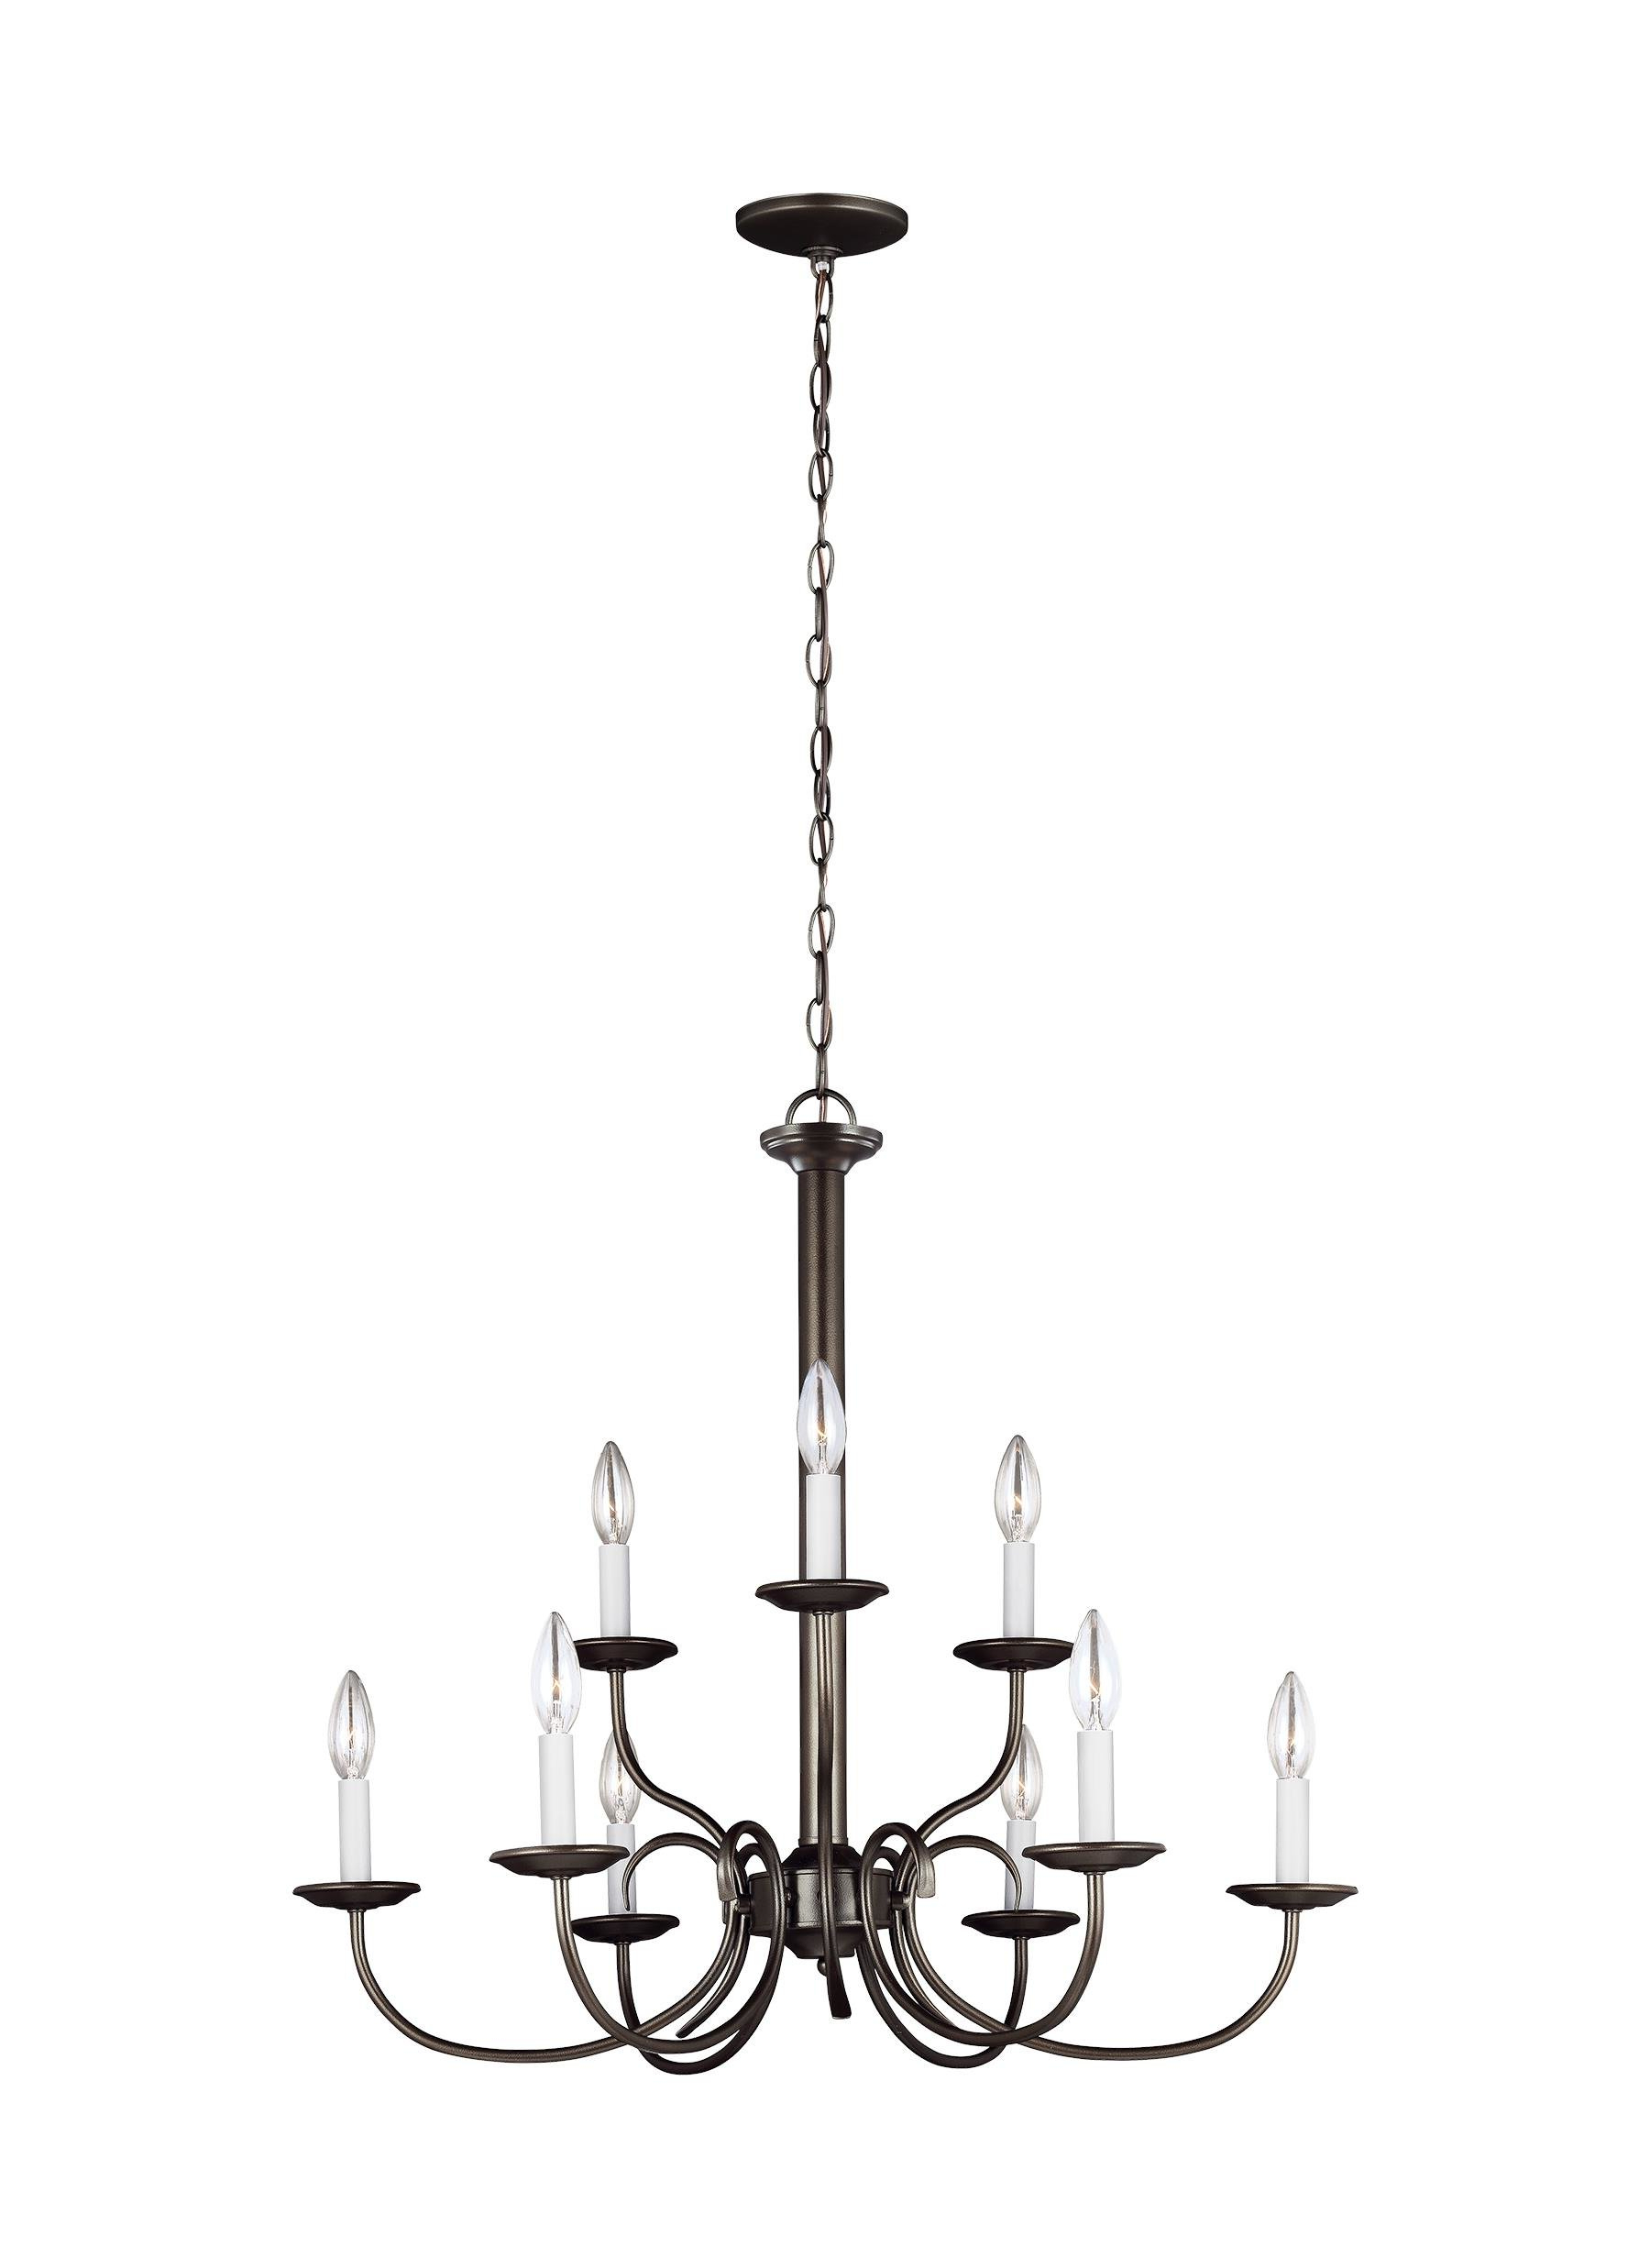 Giverny 9 Light Candle Style Chandeliers Intended For Popular Giverny 9 Light Chandelier (View 7 of 20)